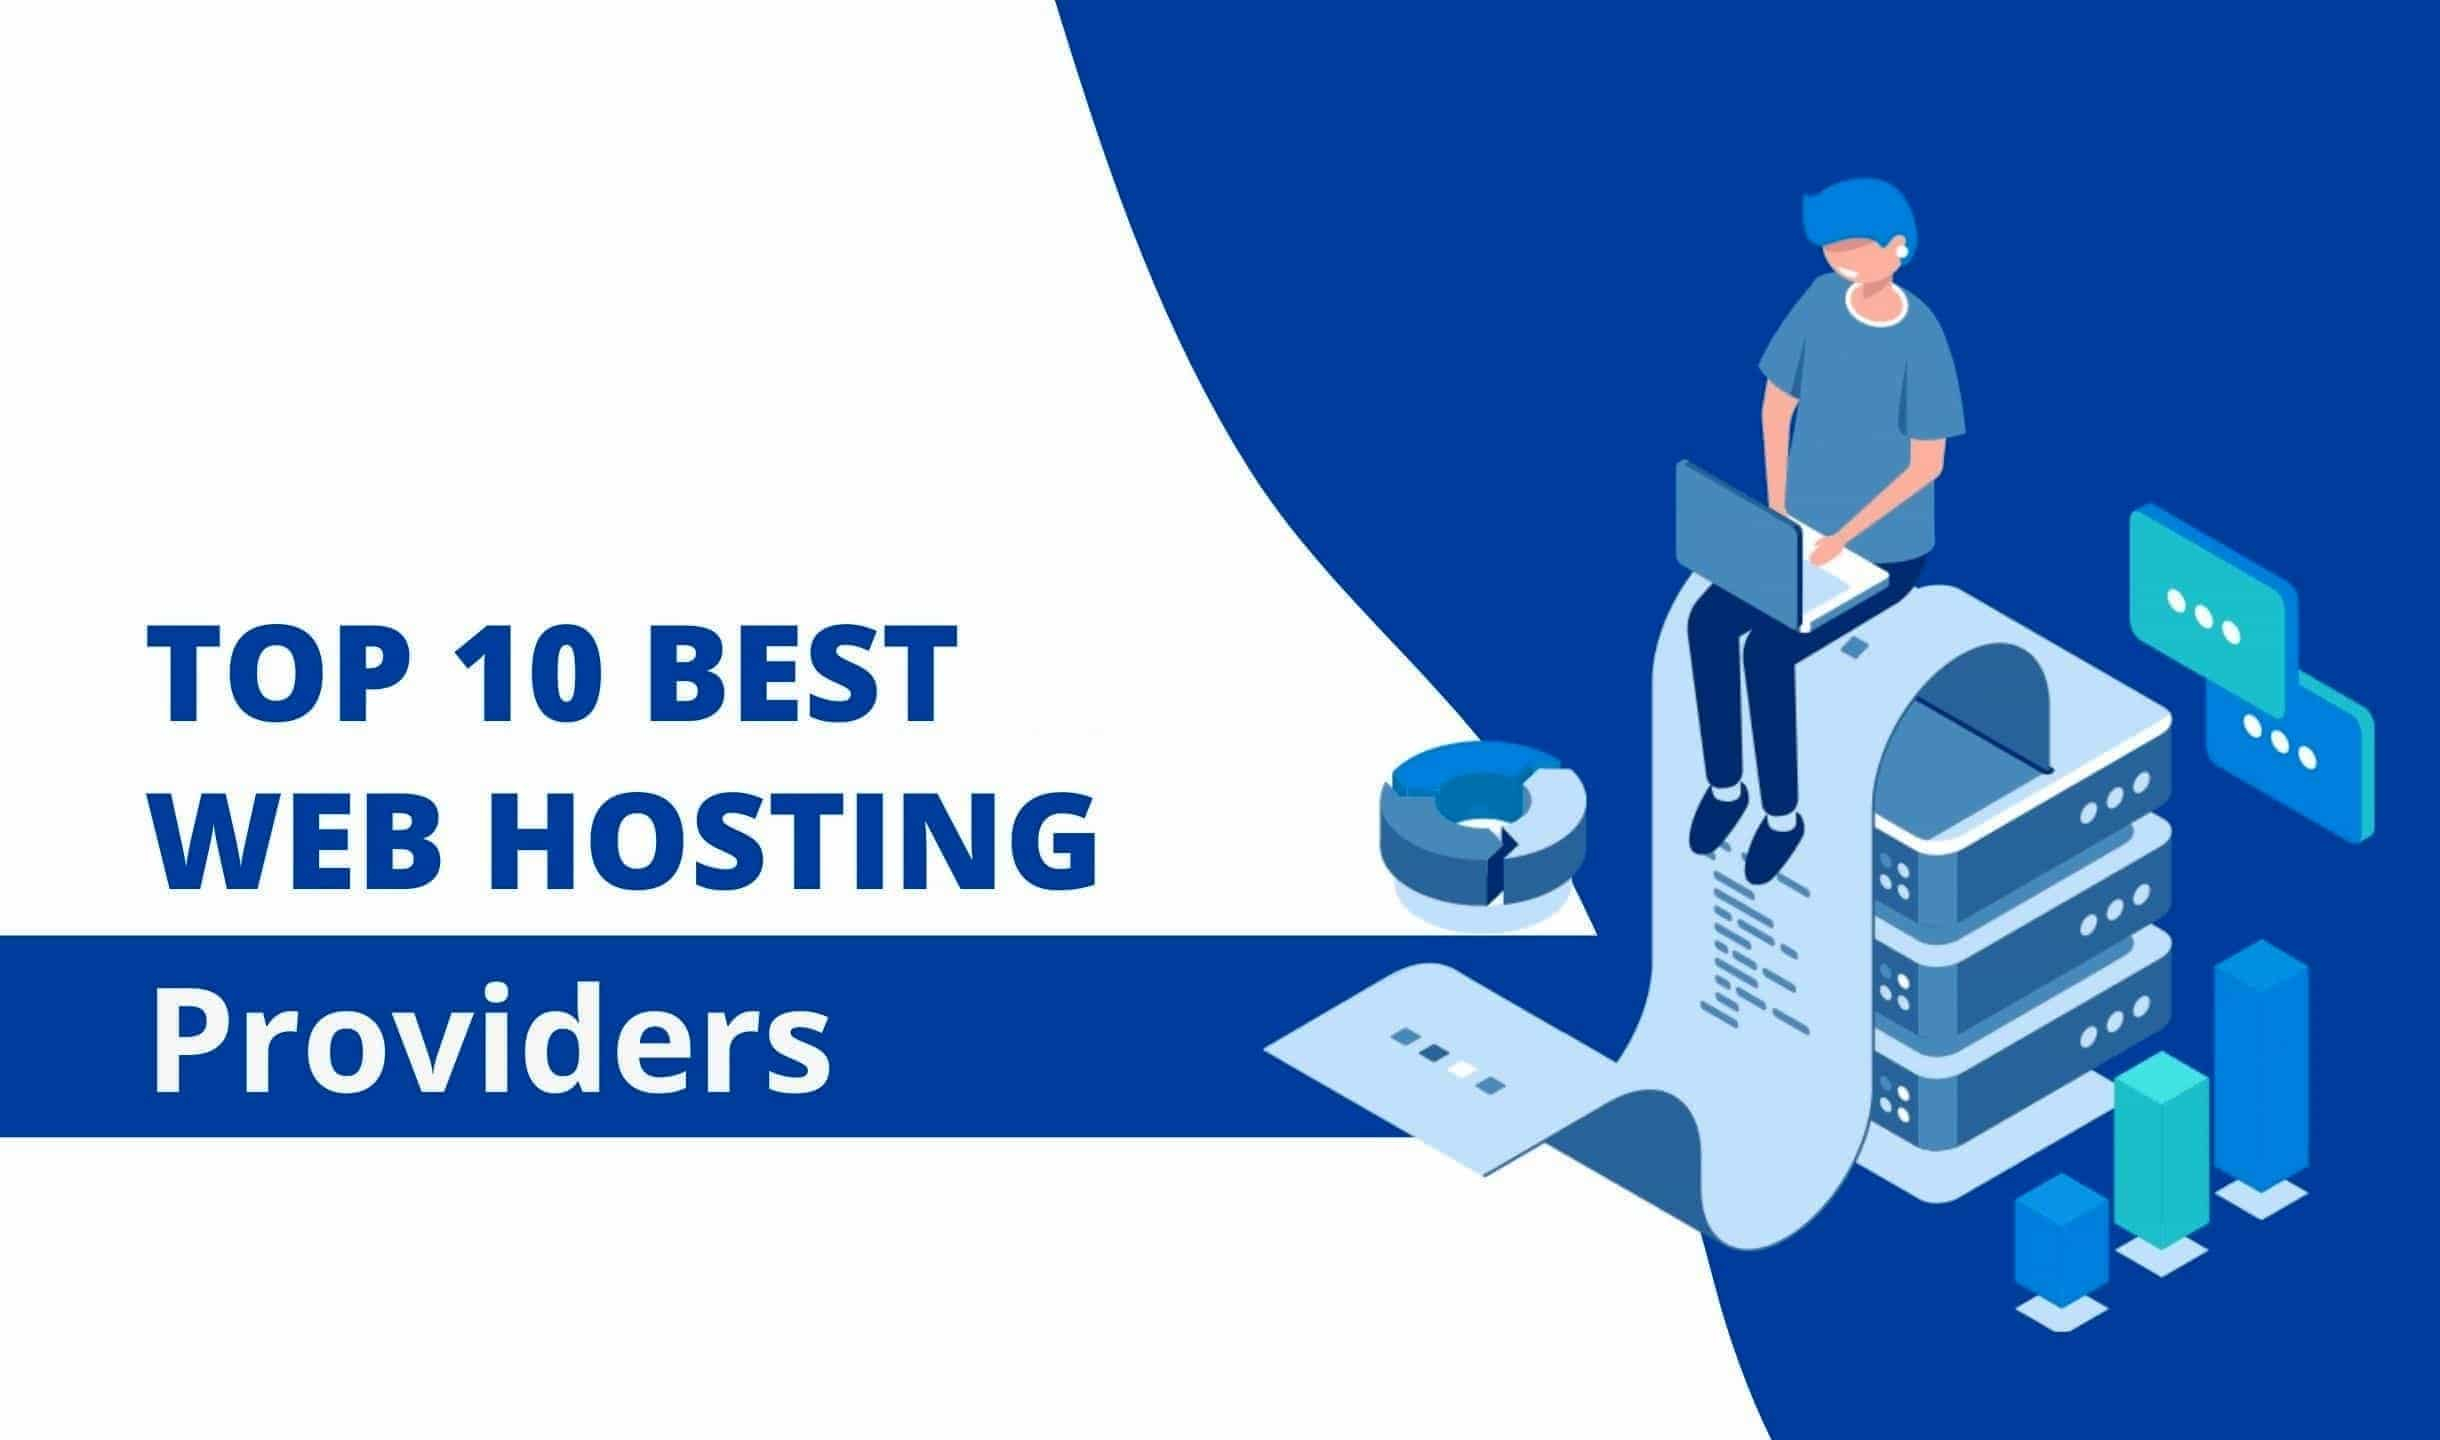 Top-10-Best-Web-Hosting-companies-for-Small-Business-in-2020-Web-Hosting-Reviews